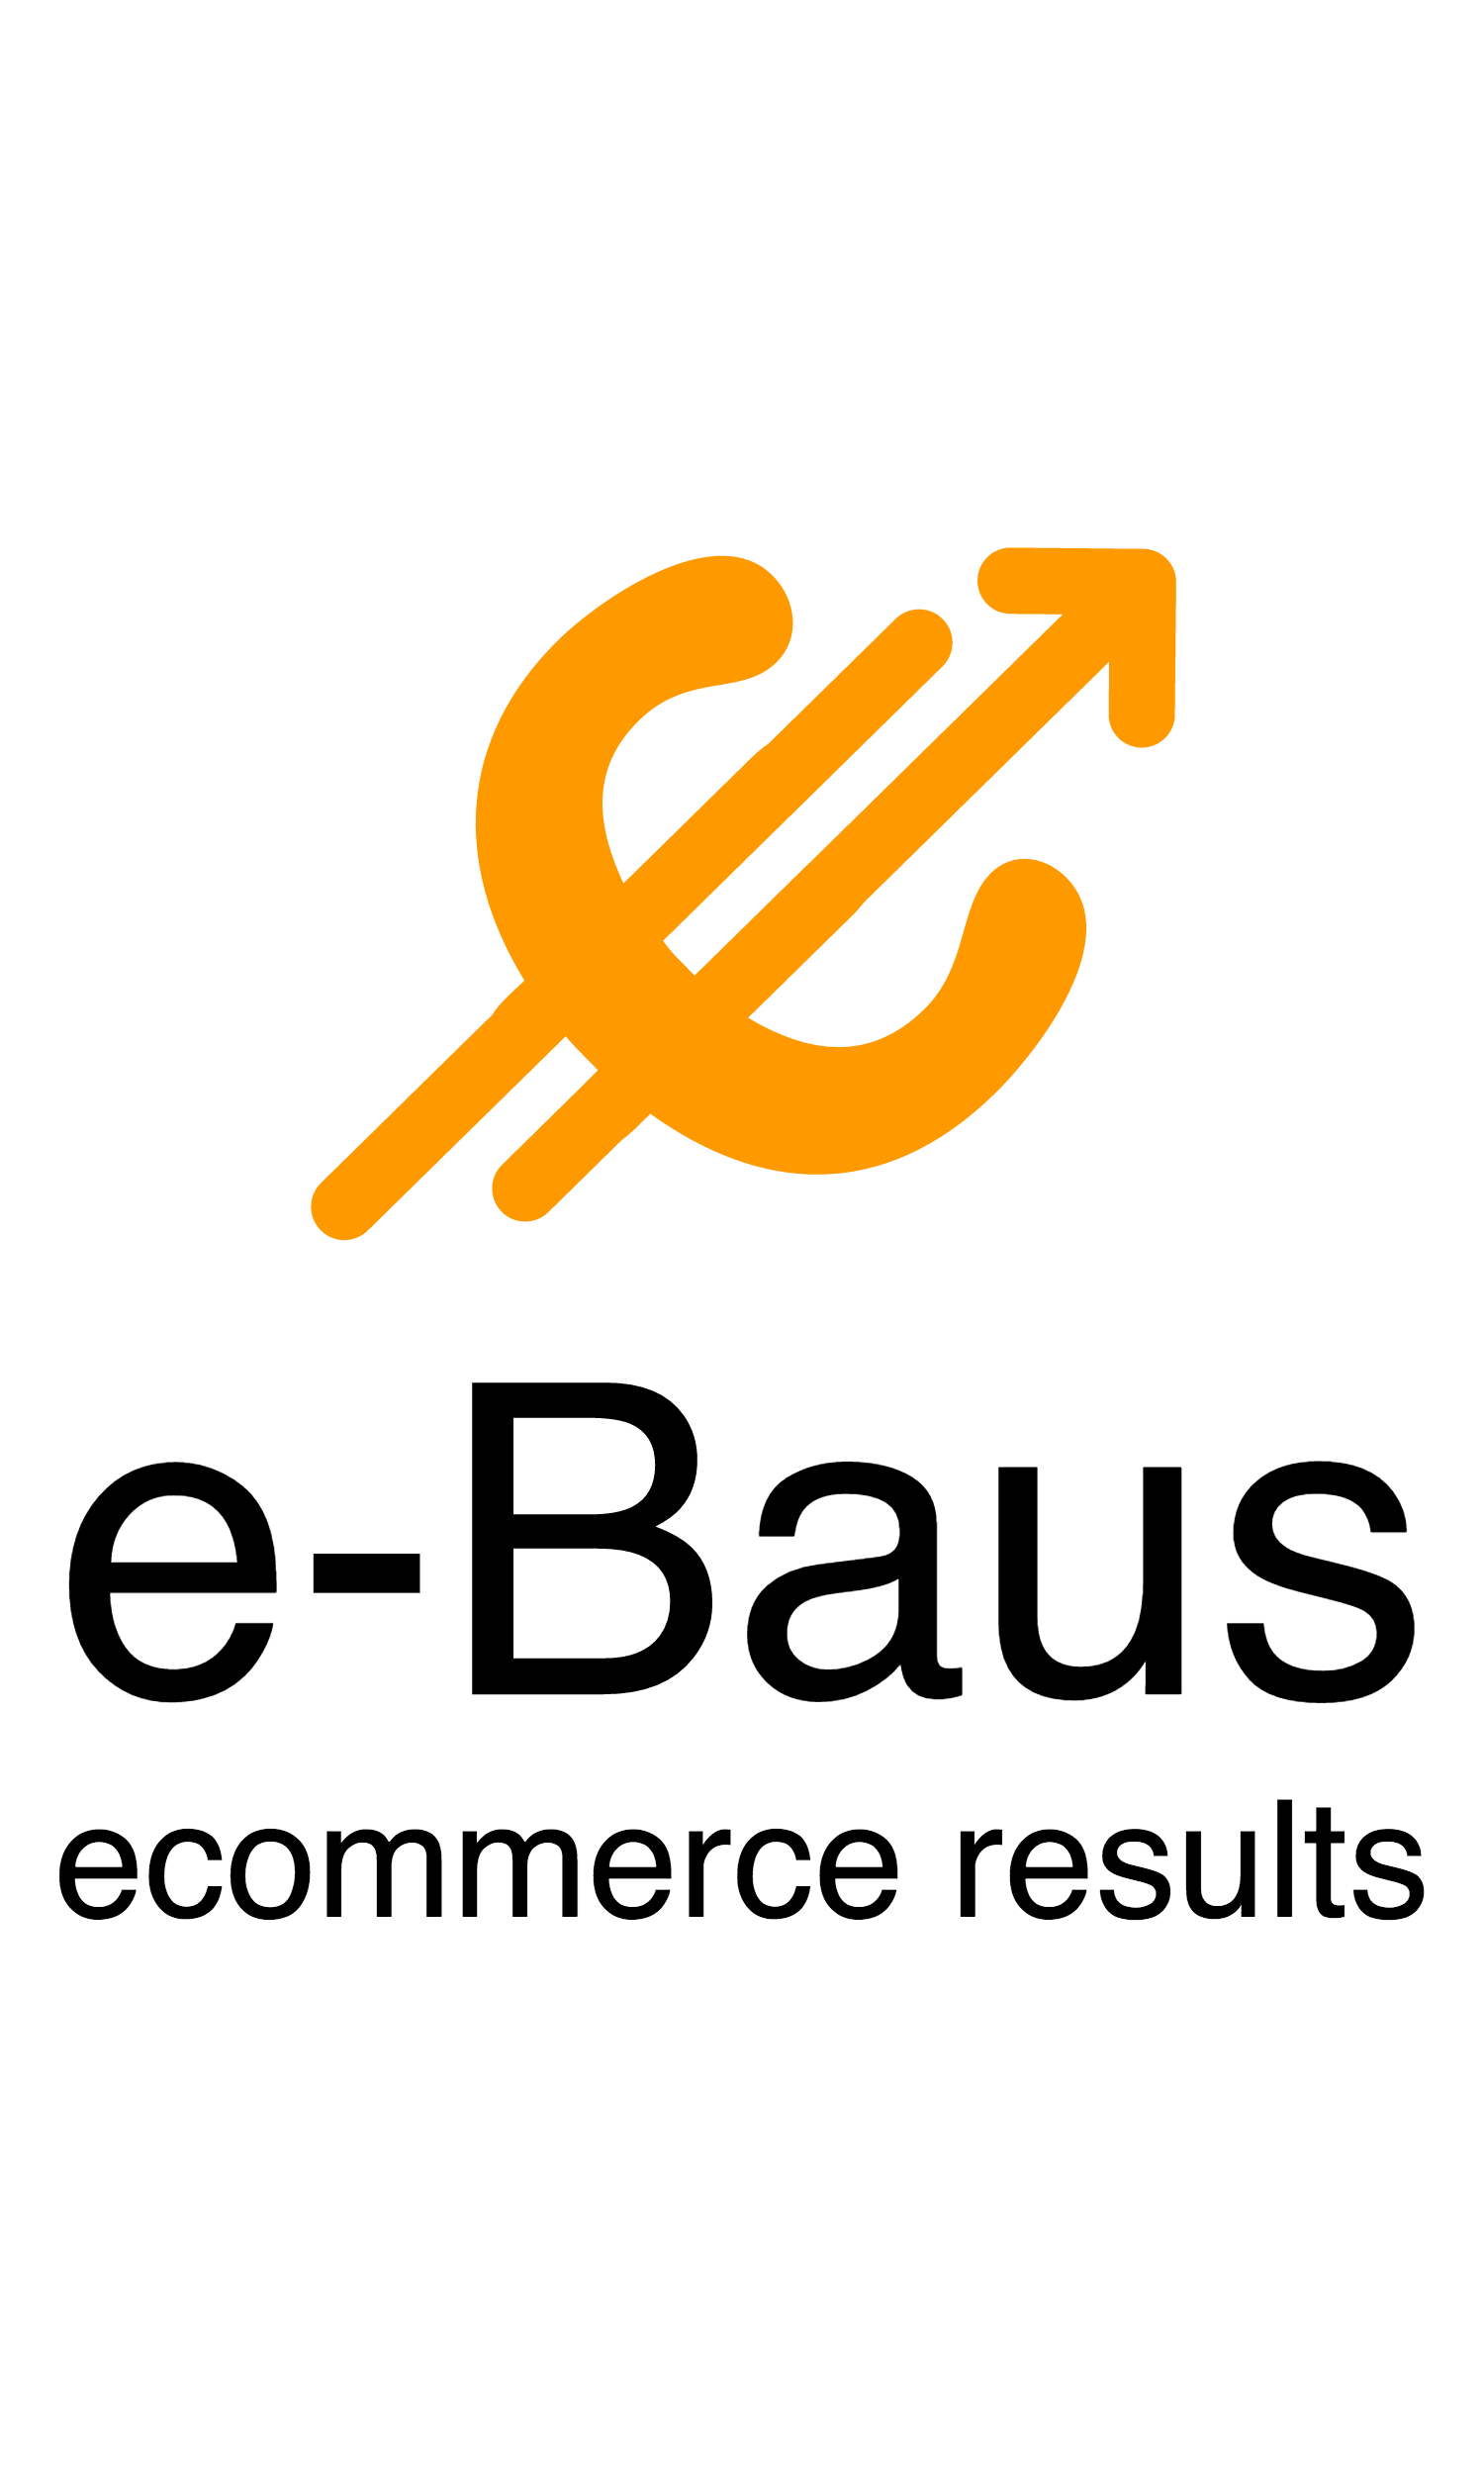 E-Baus - Amazon SEO I PPC I Vendor & Seller Central Support